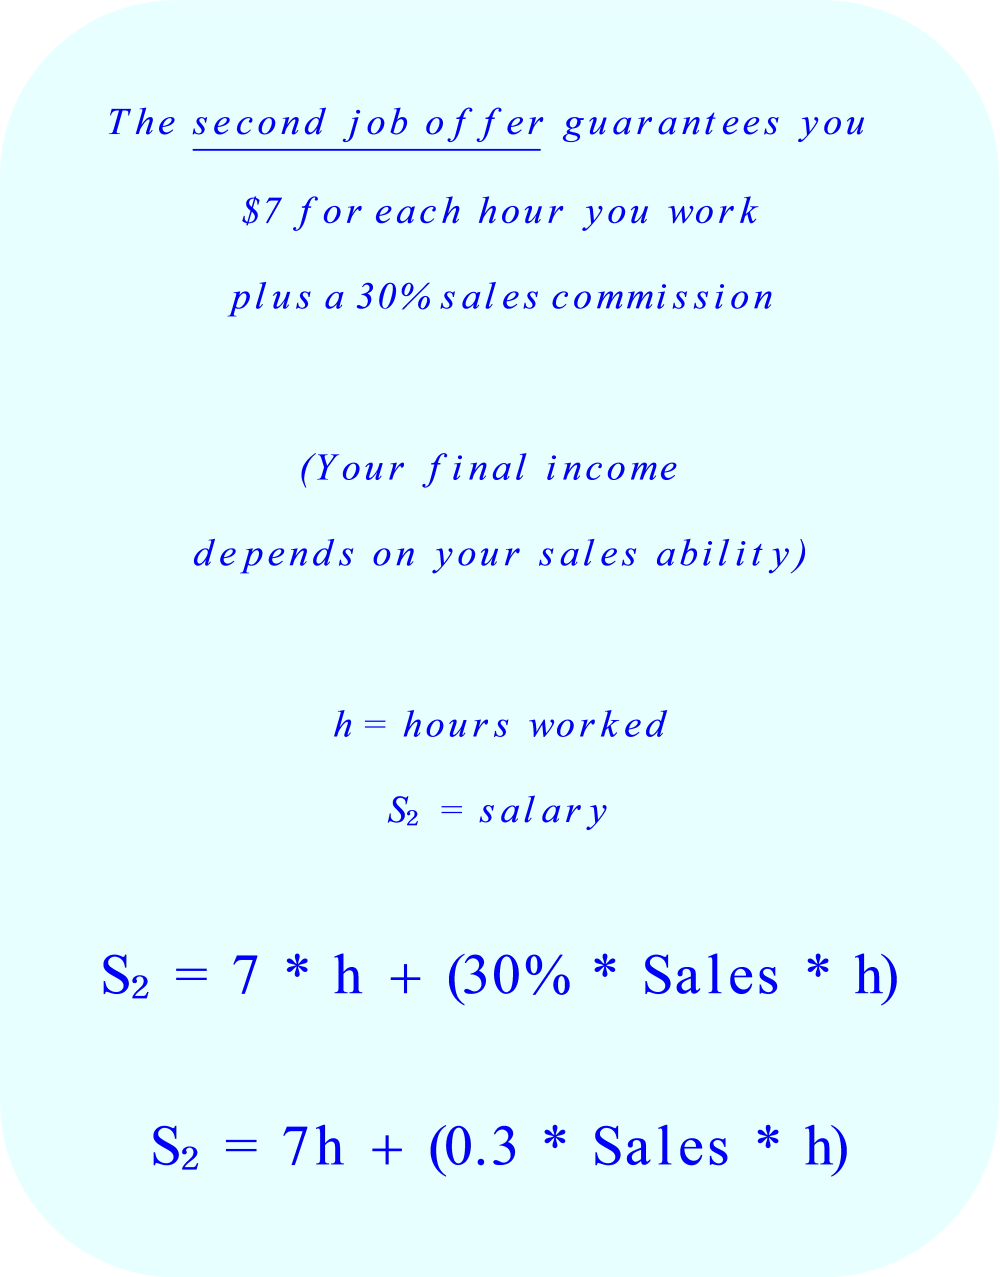 compare two job offers the second job offer guarantees you 7 for each hour you work